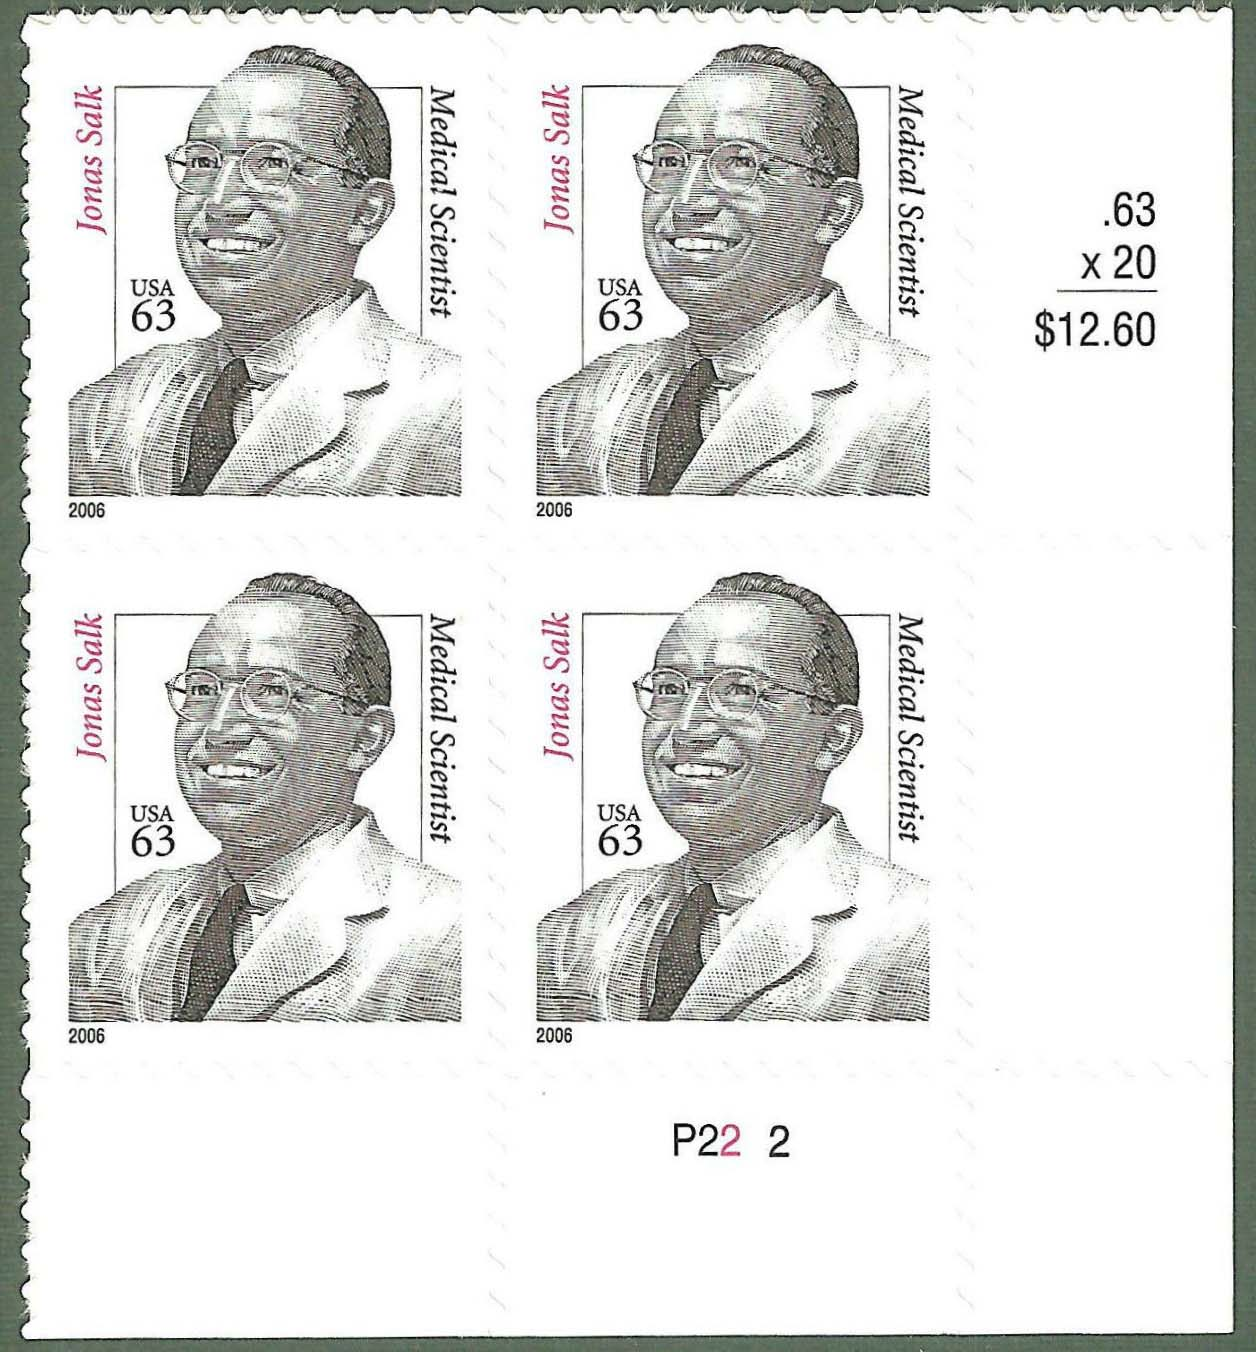 "Scott 3428 Plate Block (63 cents) <p> <a href=""/images/USA-Scott-3428-PB.jpg""><font color=green><b>View the image</a></b></font>"